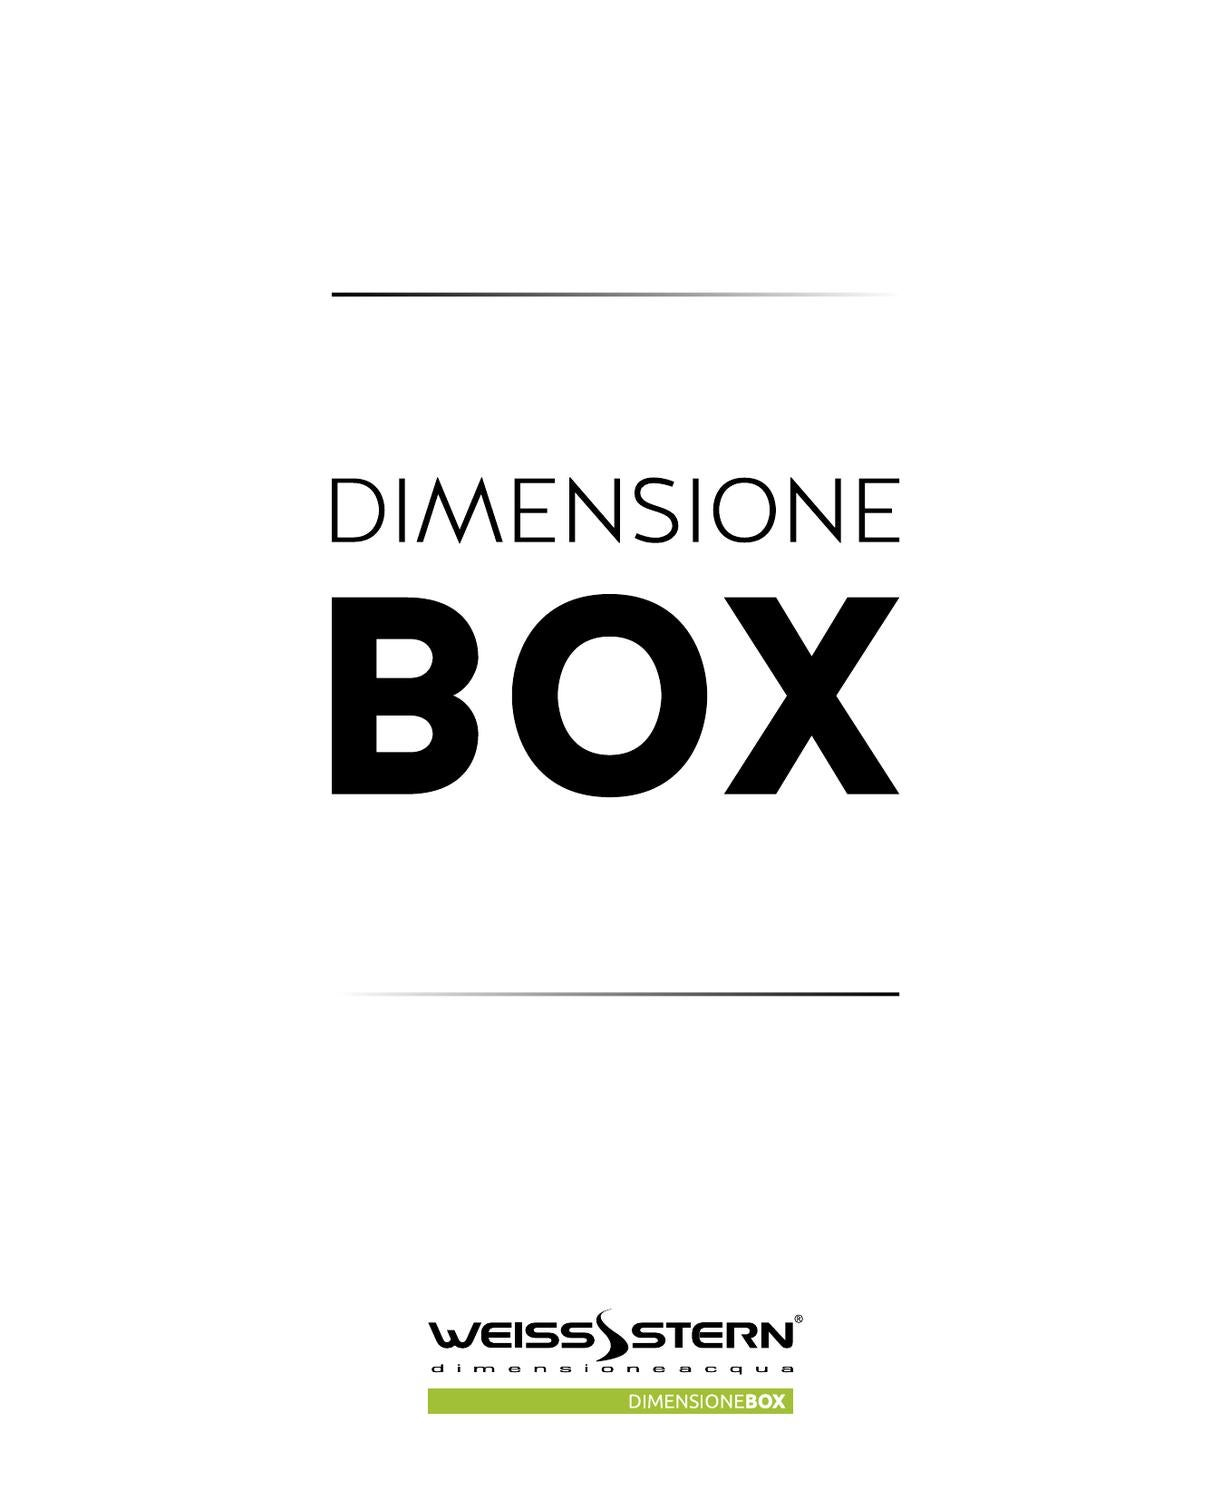 Box Doccia Weiss Stern Catalogo Weiss Stern Dimensione Box 2013 By Luca Busetto Issuu